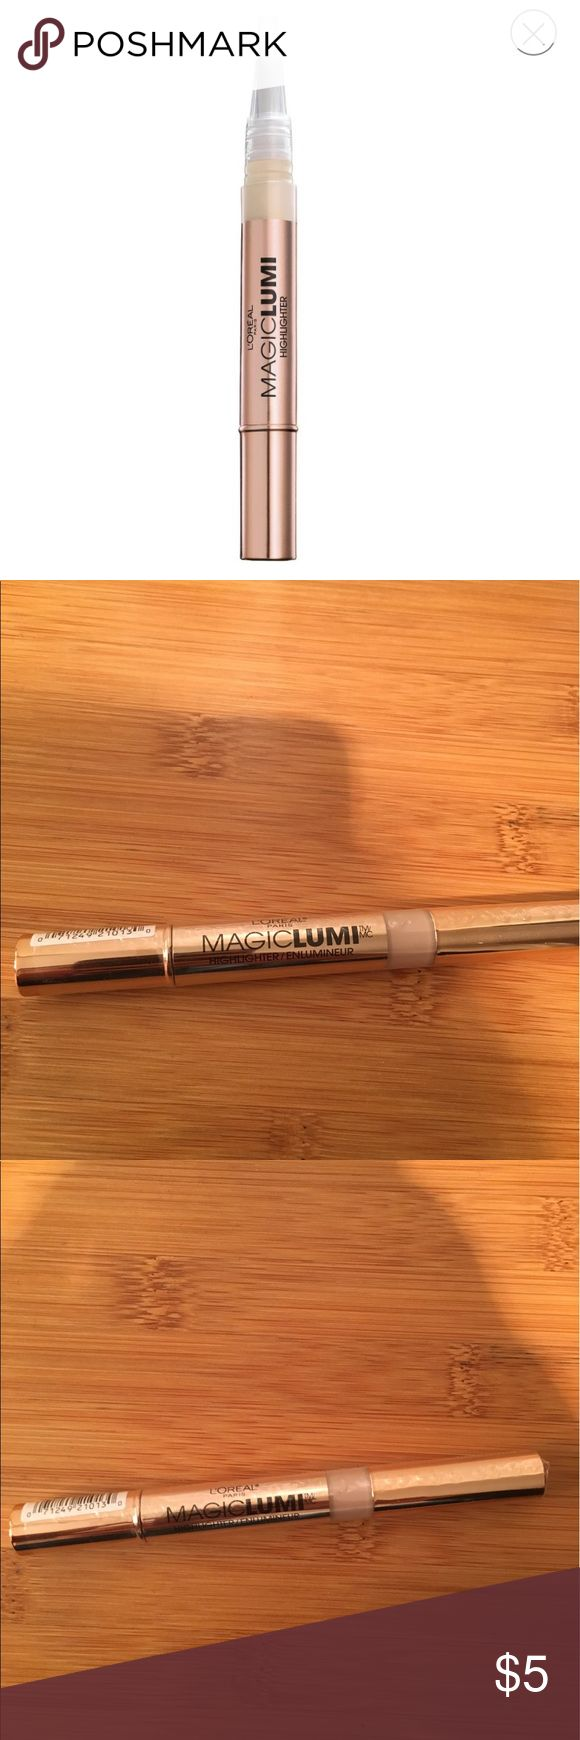 L'OREAL MAGICLUMI HIGHLIGHTER Highlight, enhance, conceal and define using Magic Lumi Highlighter. This unique liquid light formula highlights your complexion and boosts radiance for a subtle glow. Reduce dark spots or shadows with this light infused concealer. Add to the cheekbones and brow line to highlight and define key features. Use with True Match Lumi Foundation, Magic Lumi Primer and True Match Lumi Illuminators for an added boost of luminosity. L'Oreal Makeup